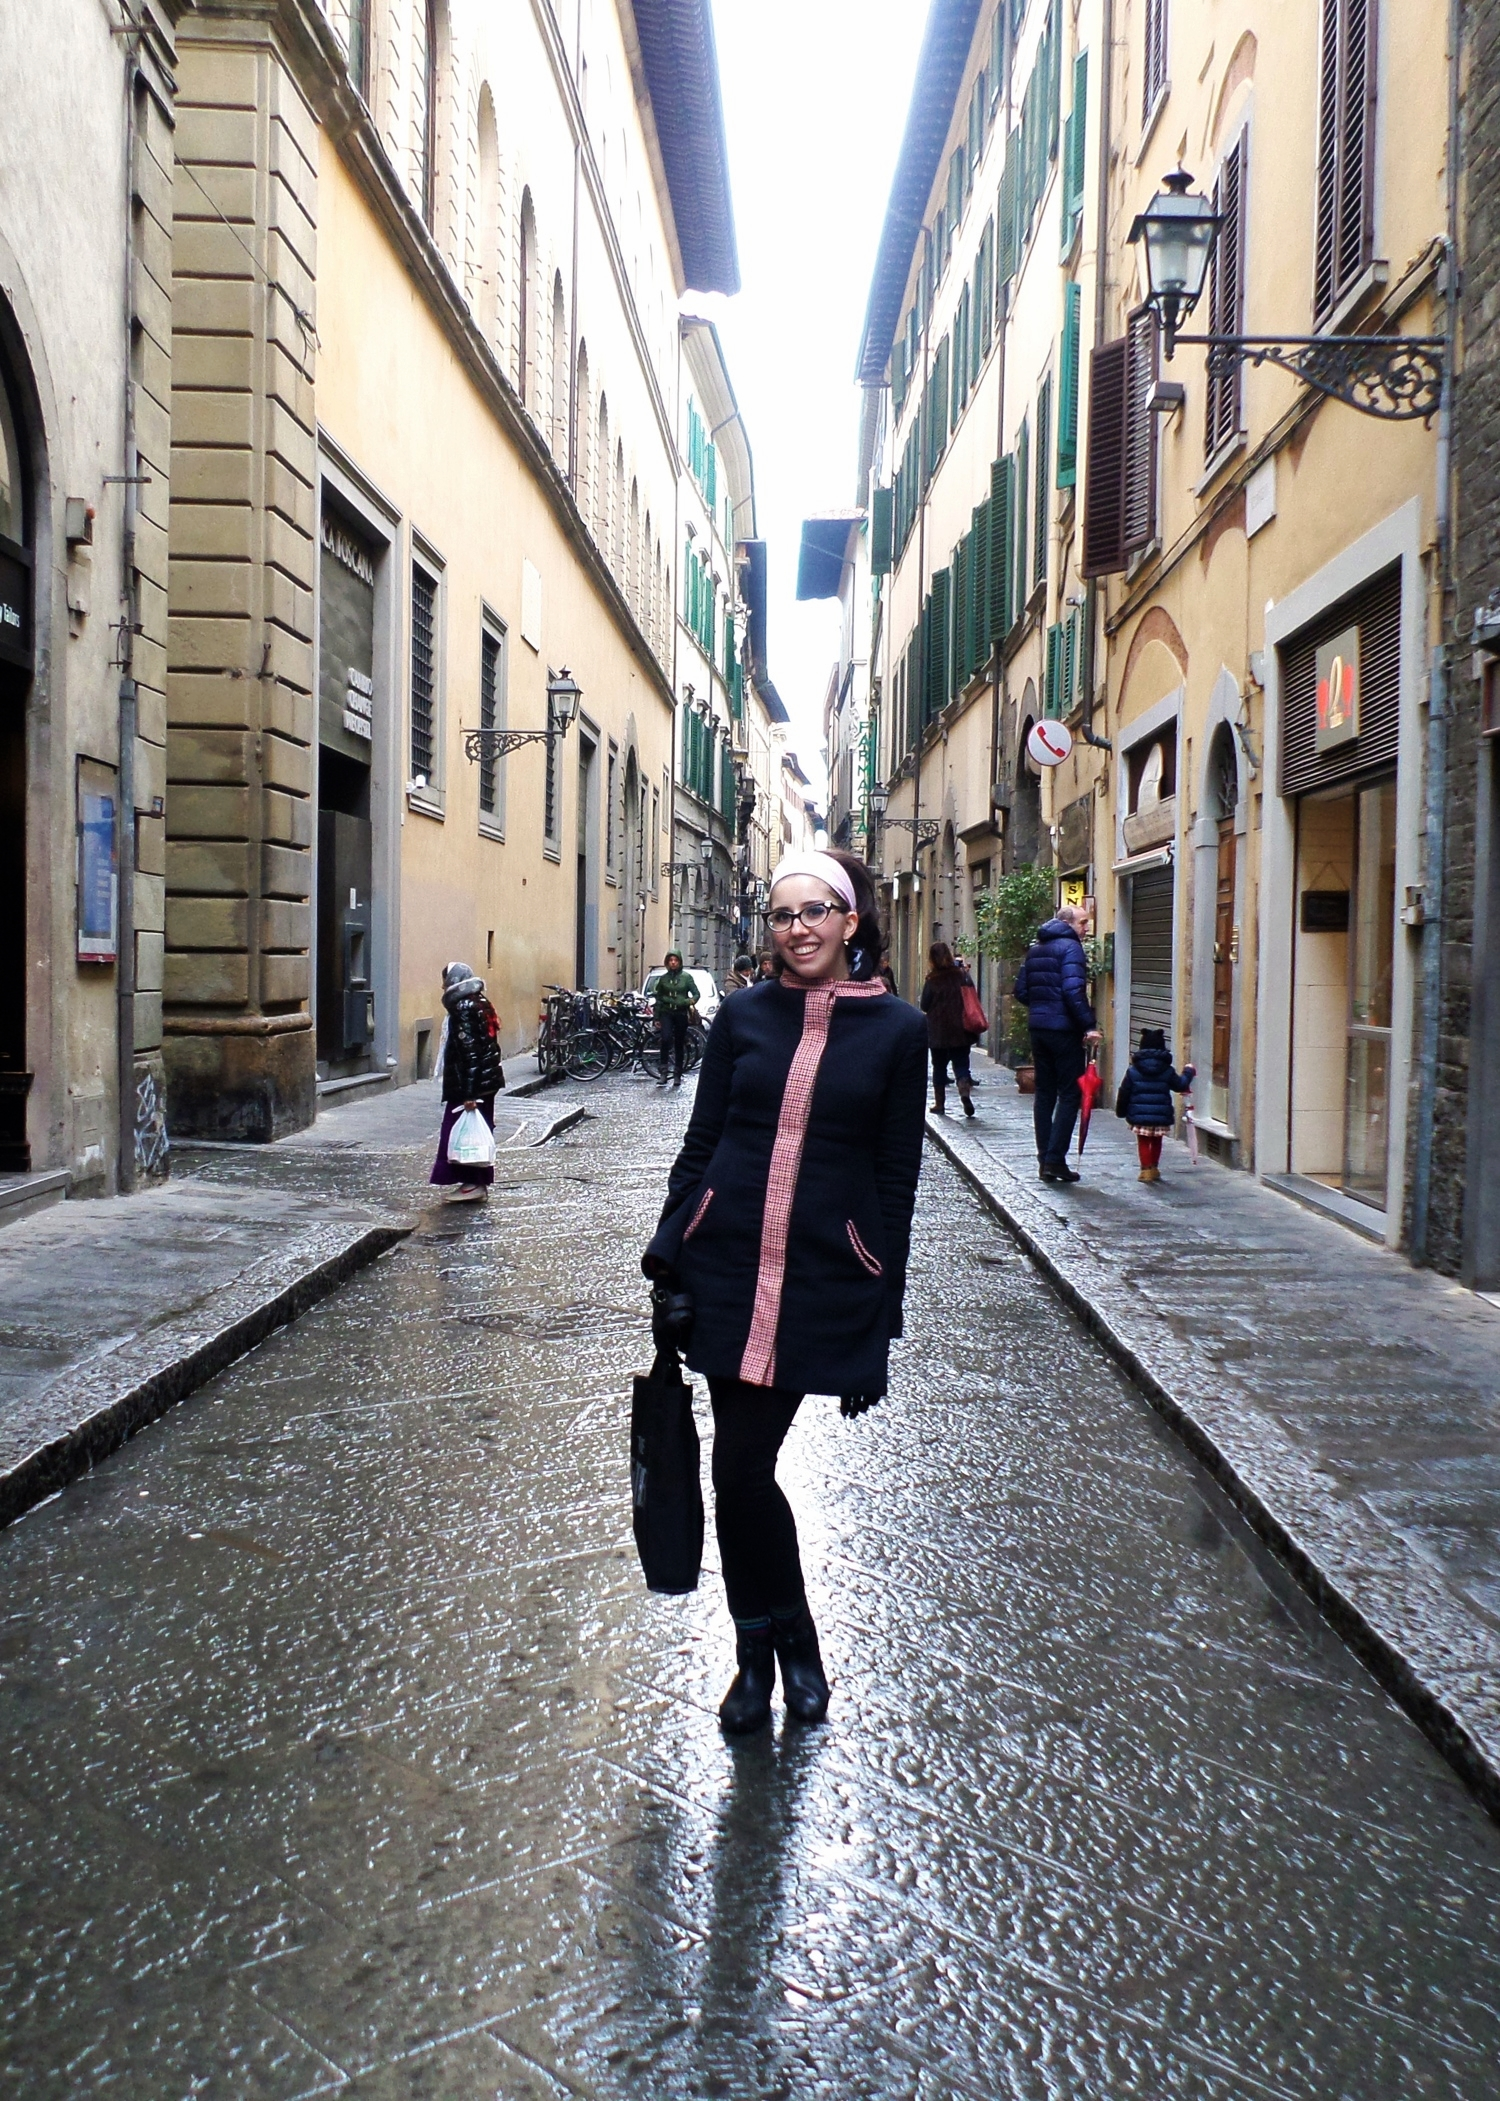 Rainy but lovely Florence city streets.